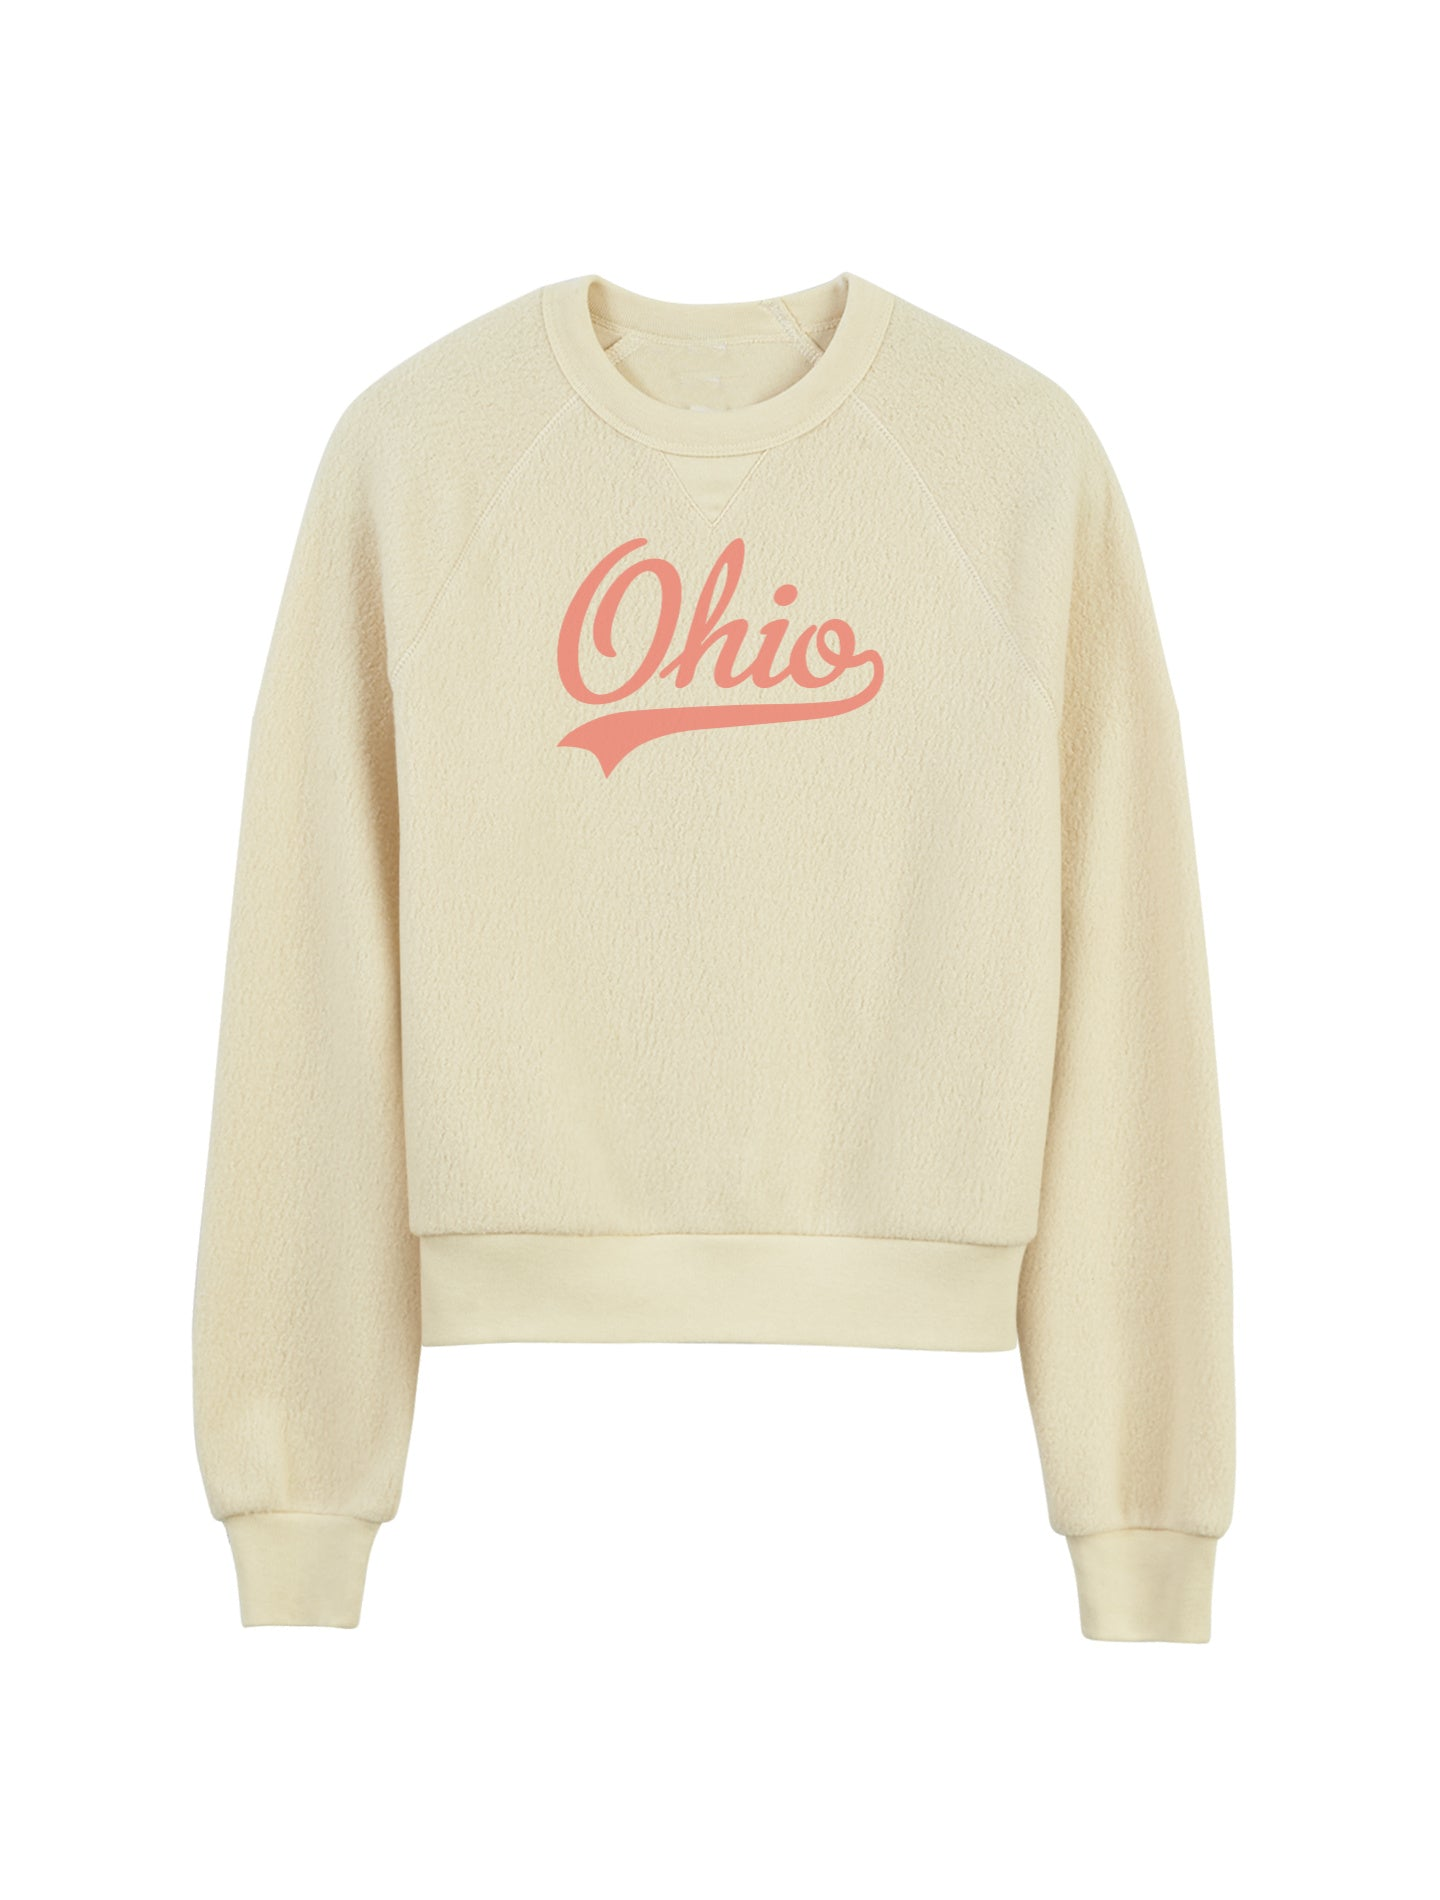 Retro Ohio Fuzzy Crop Lady Fleece Pullover - Little Chicago Clothing Co.